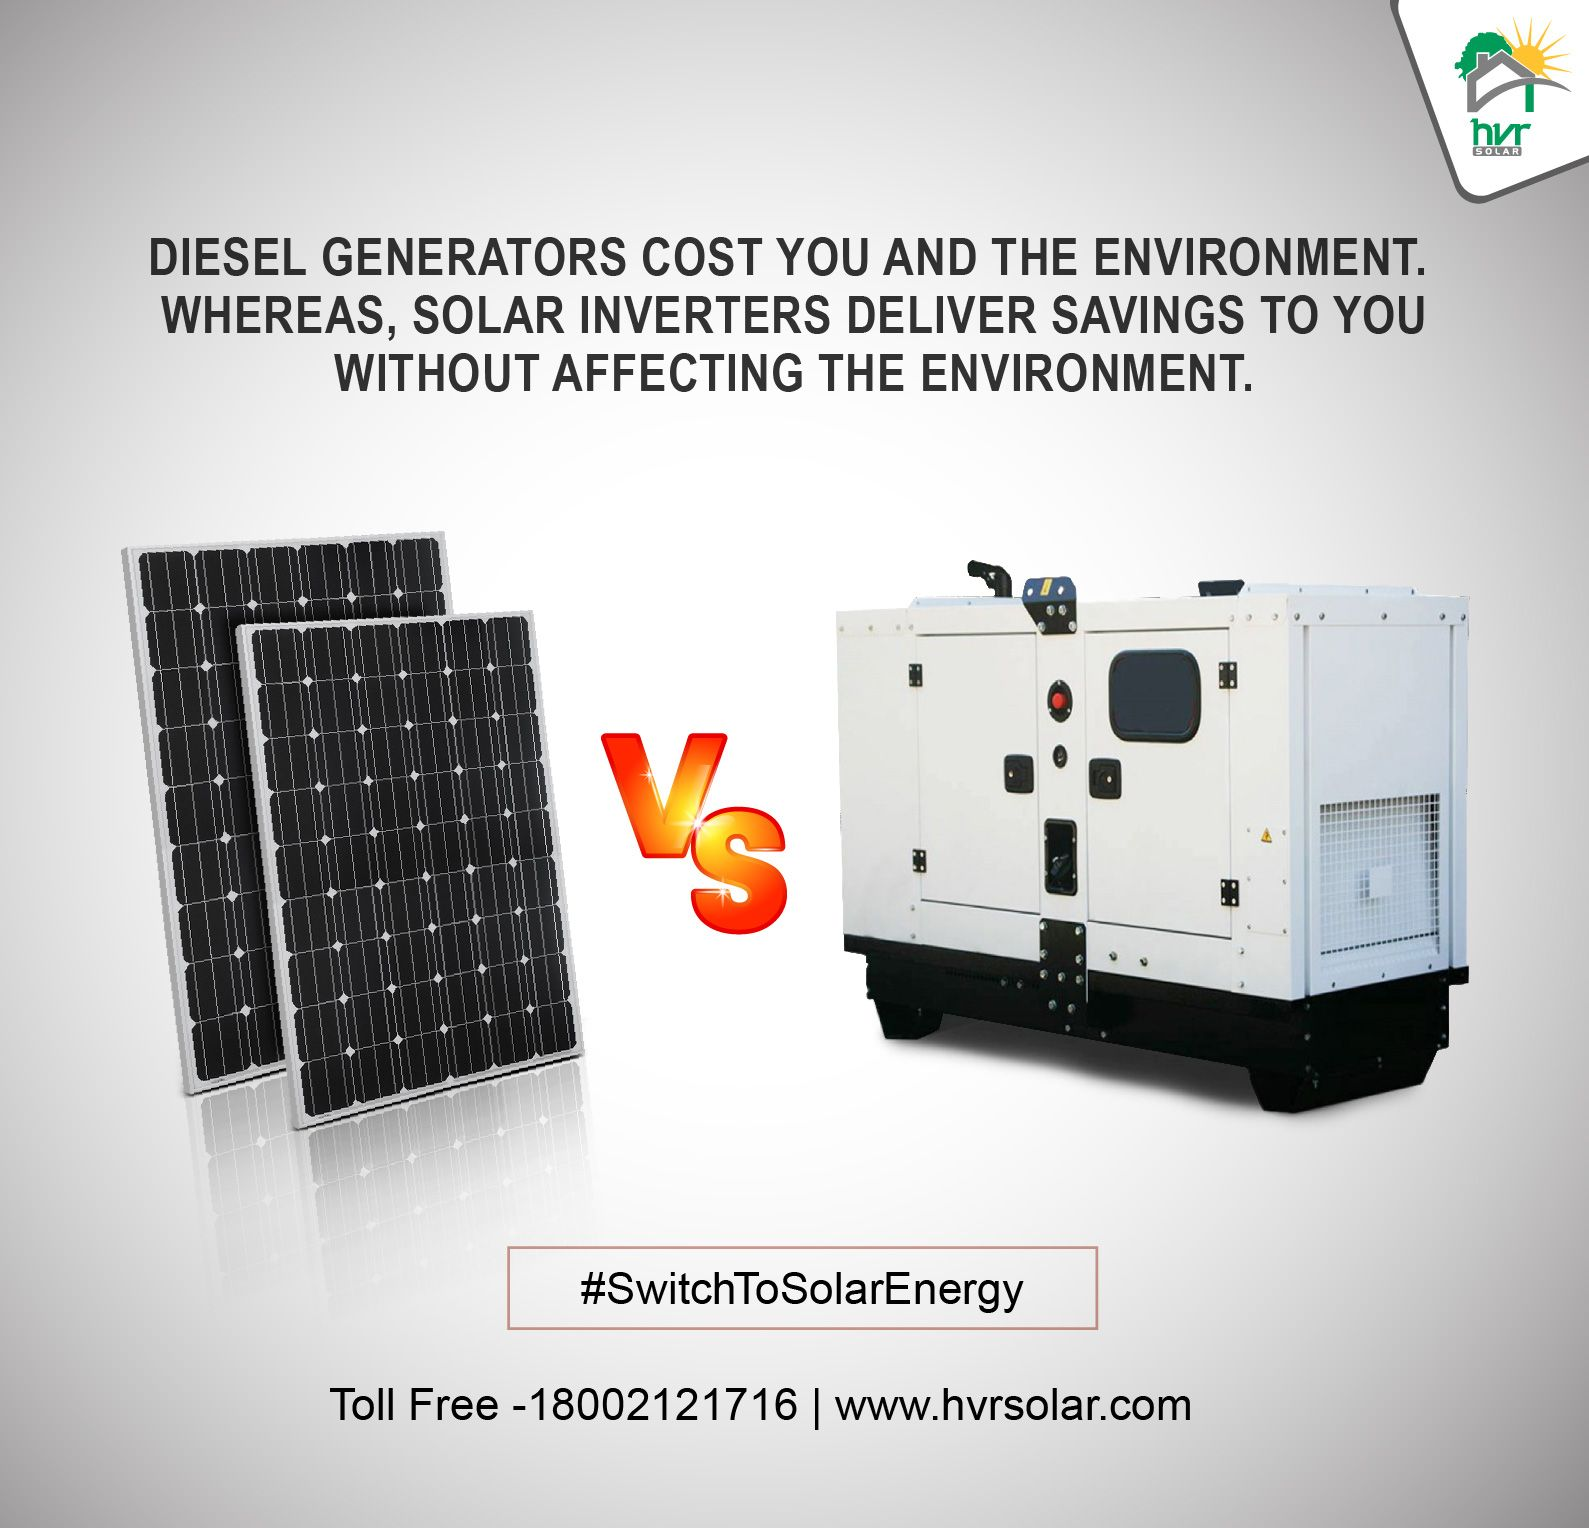 Solarknowledge Unit Cost Of Electricity Including Batteries Cost From Solar Is Approximately Half That Of A Diesel Generator Al Solar Pv Solar Panels Solar